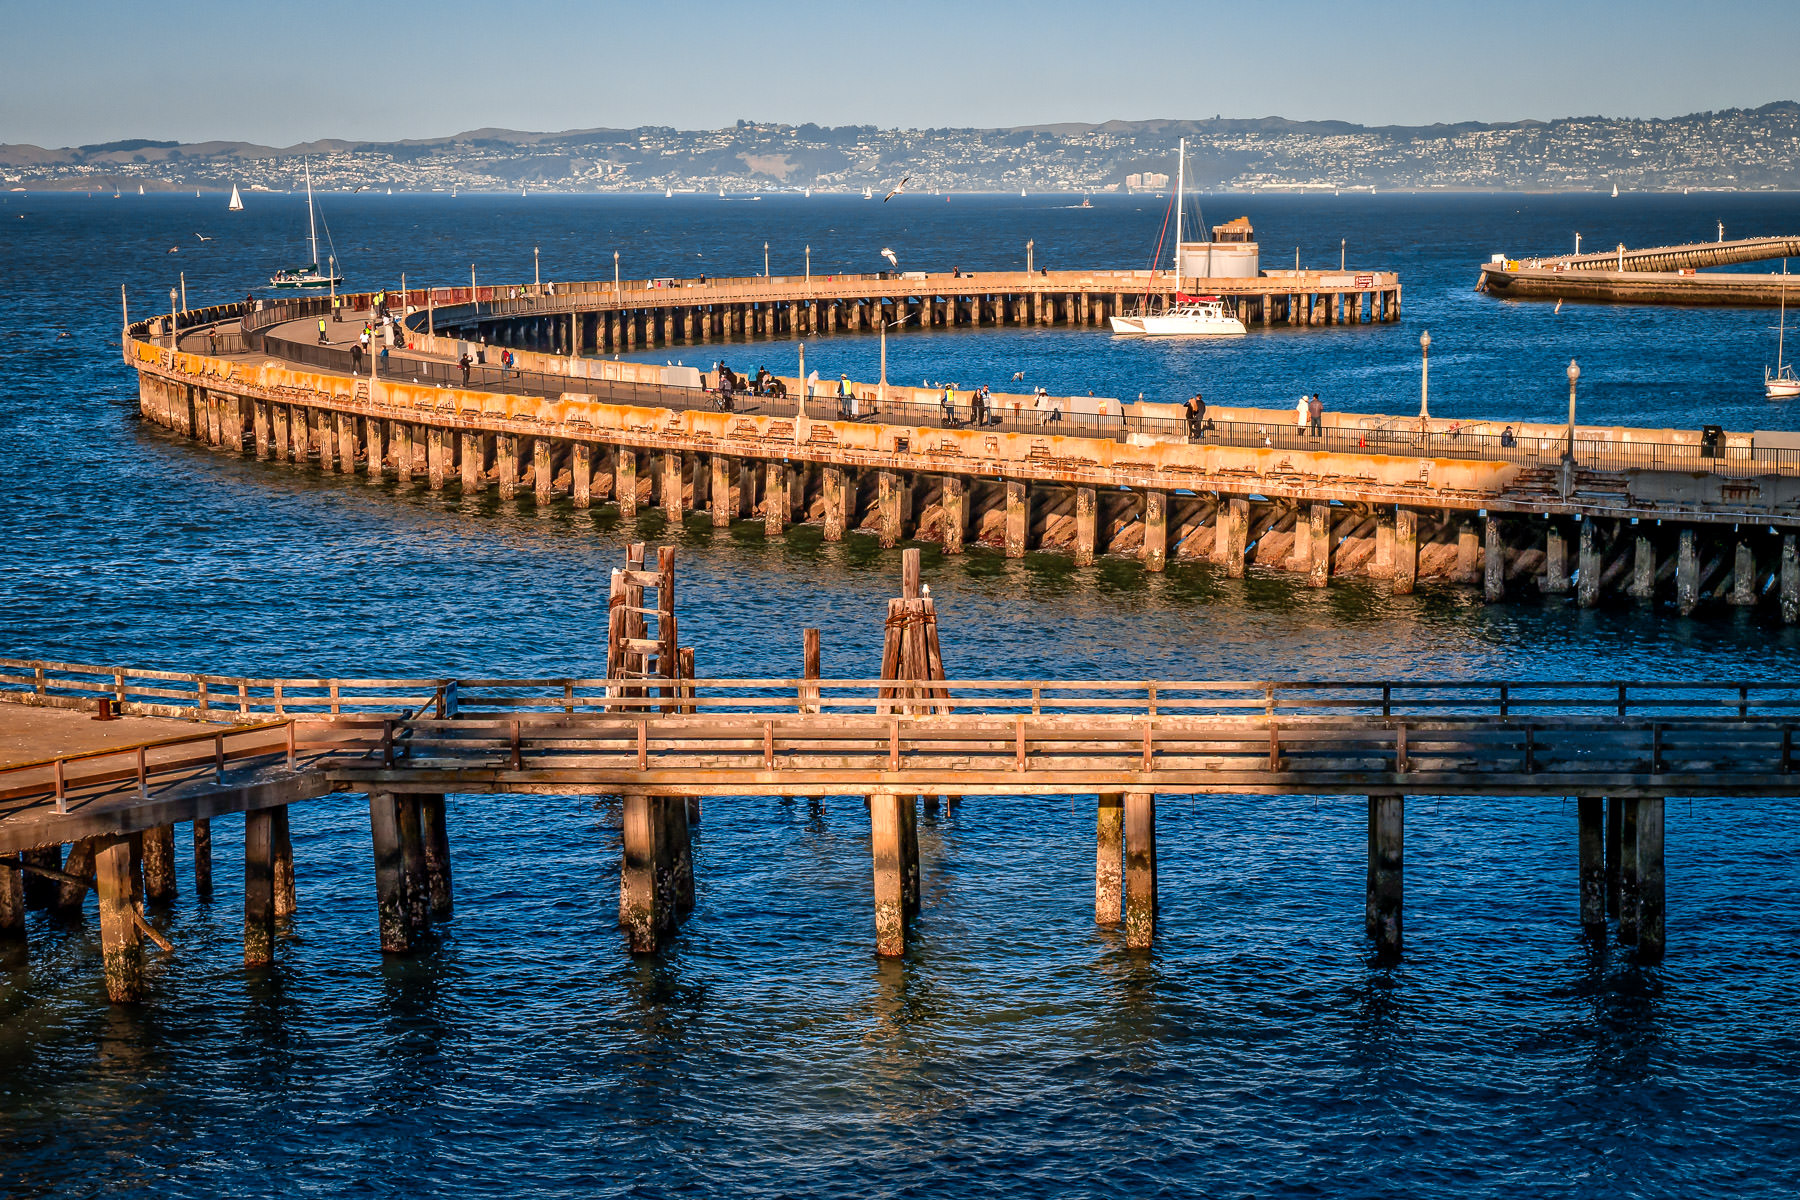 San Francisco's 1400-foot-long Aquatic Park Pier curves out into San Francisco Bay.